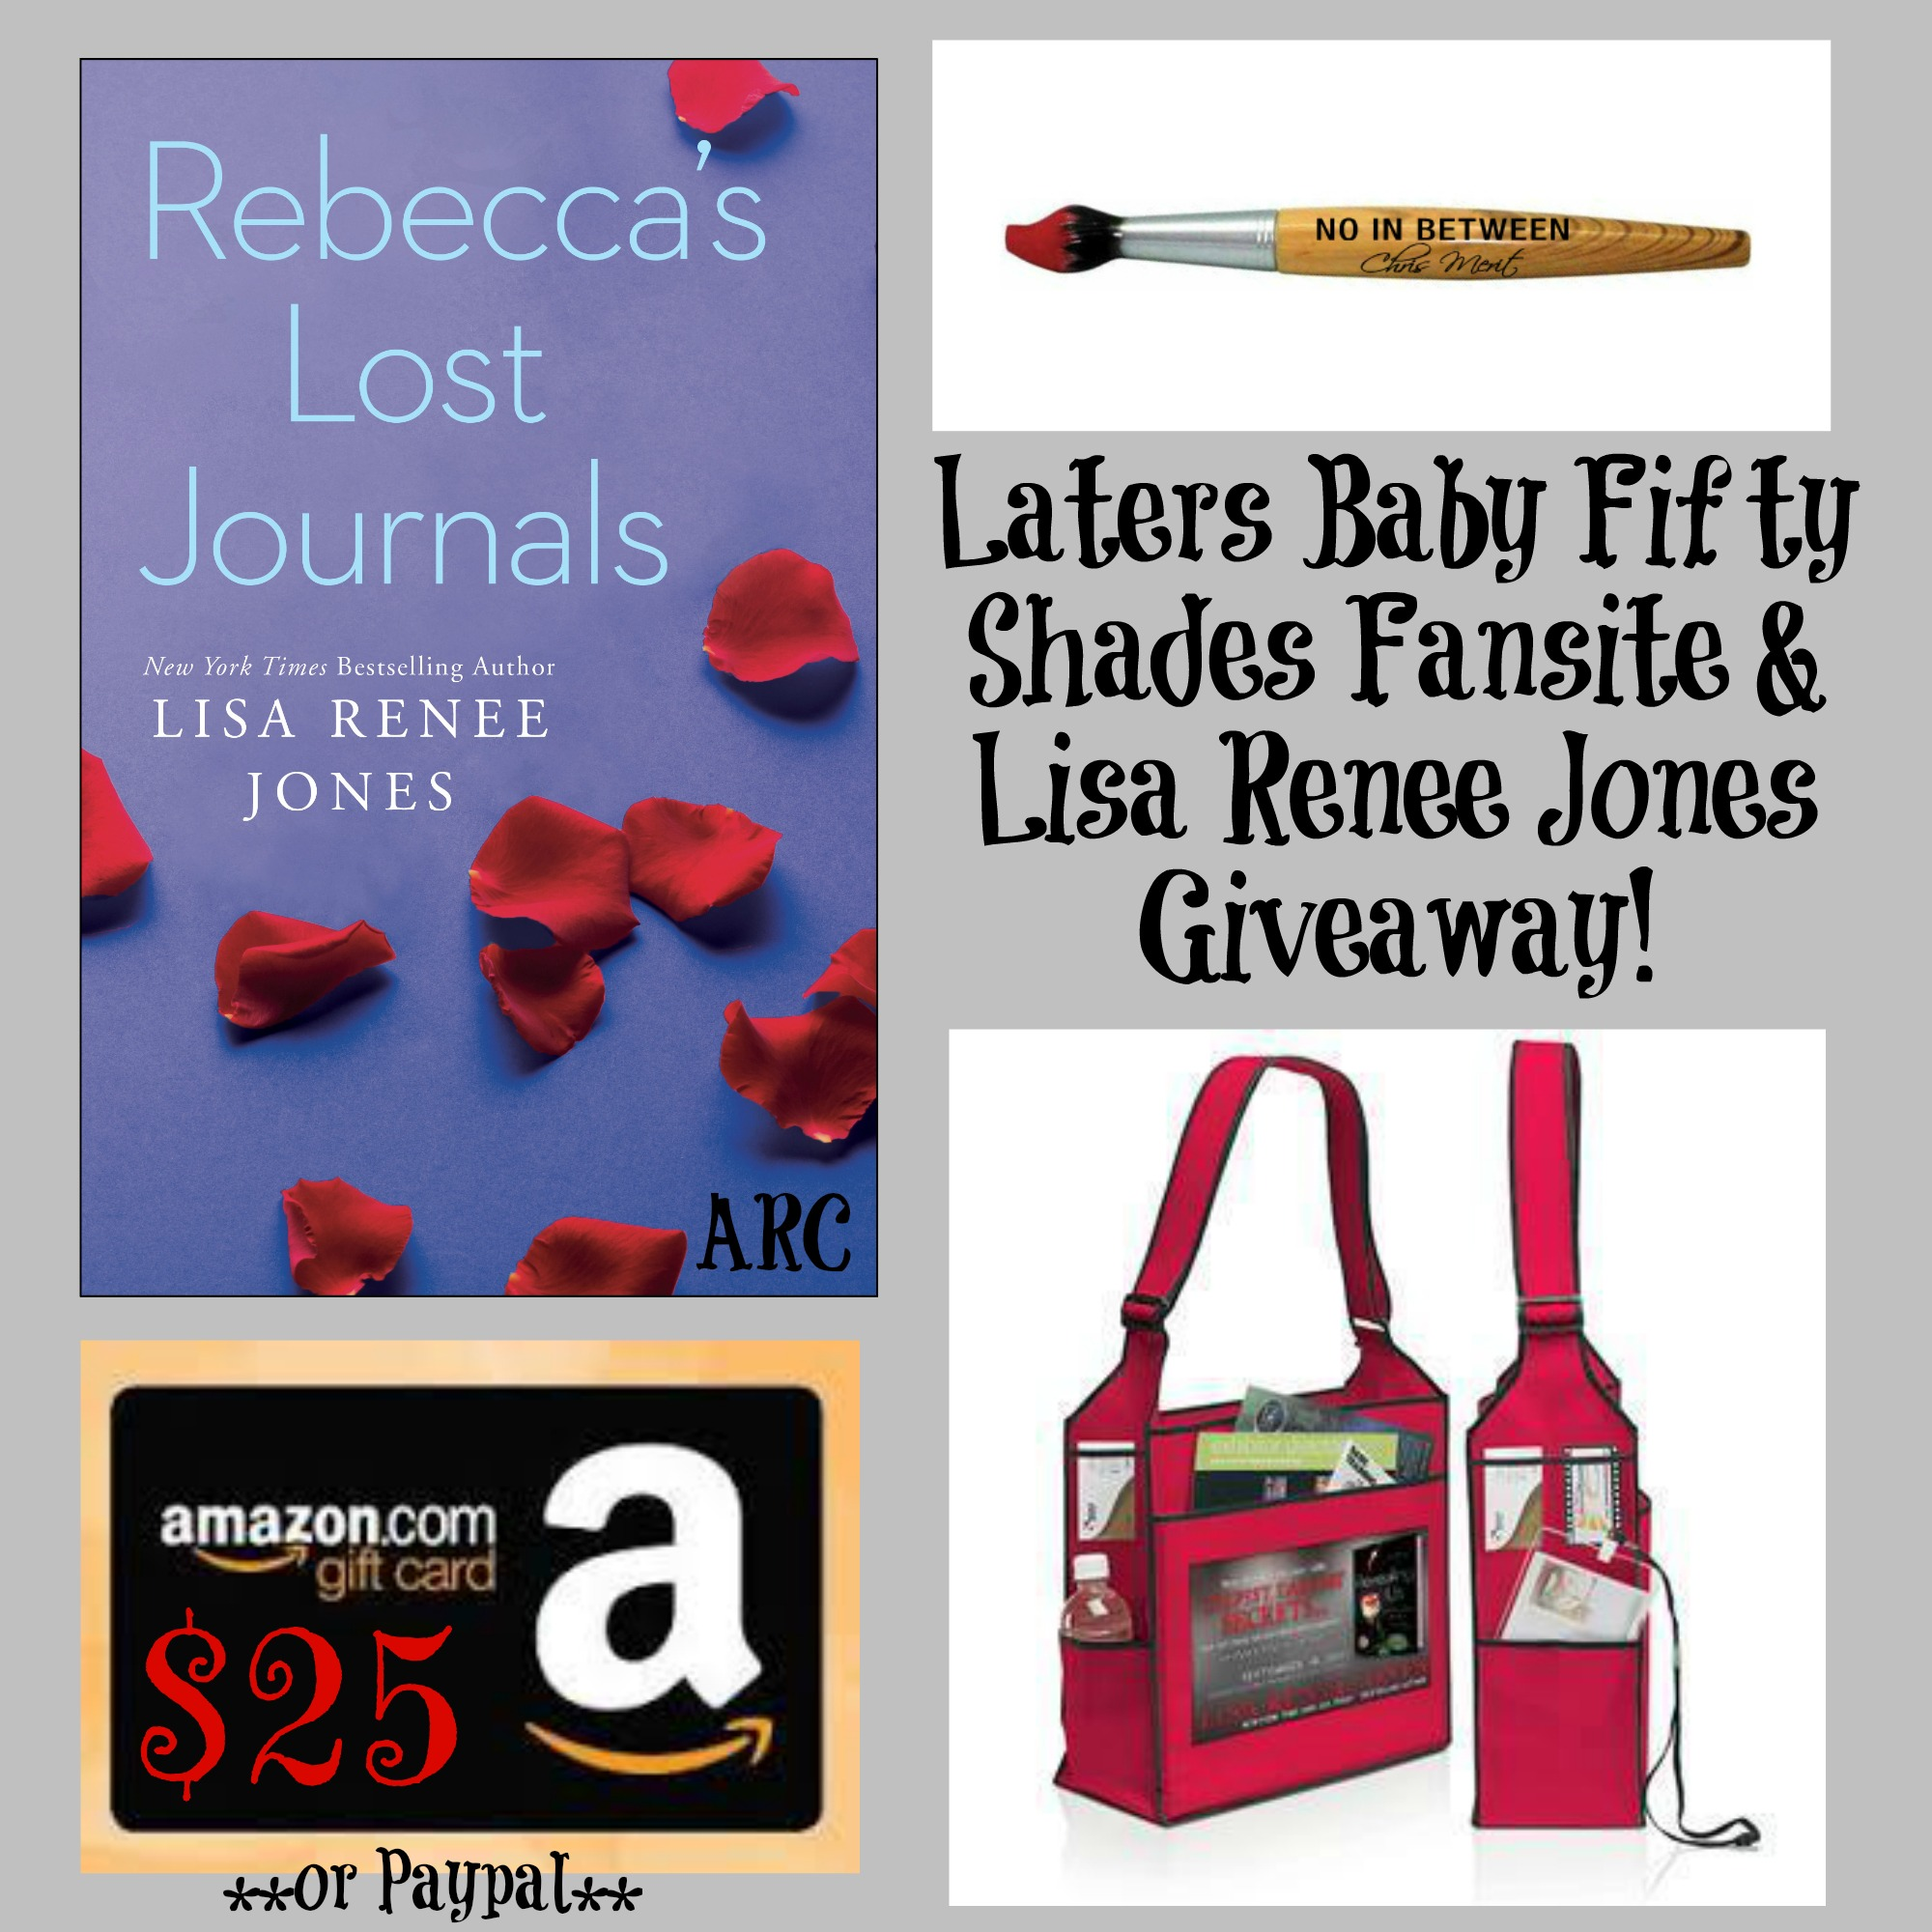 Laters Baby & LRJ Giveaway